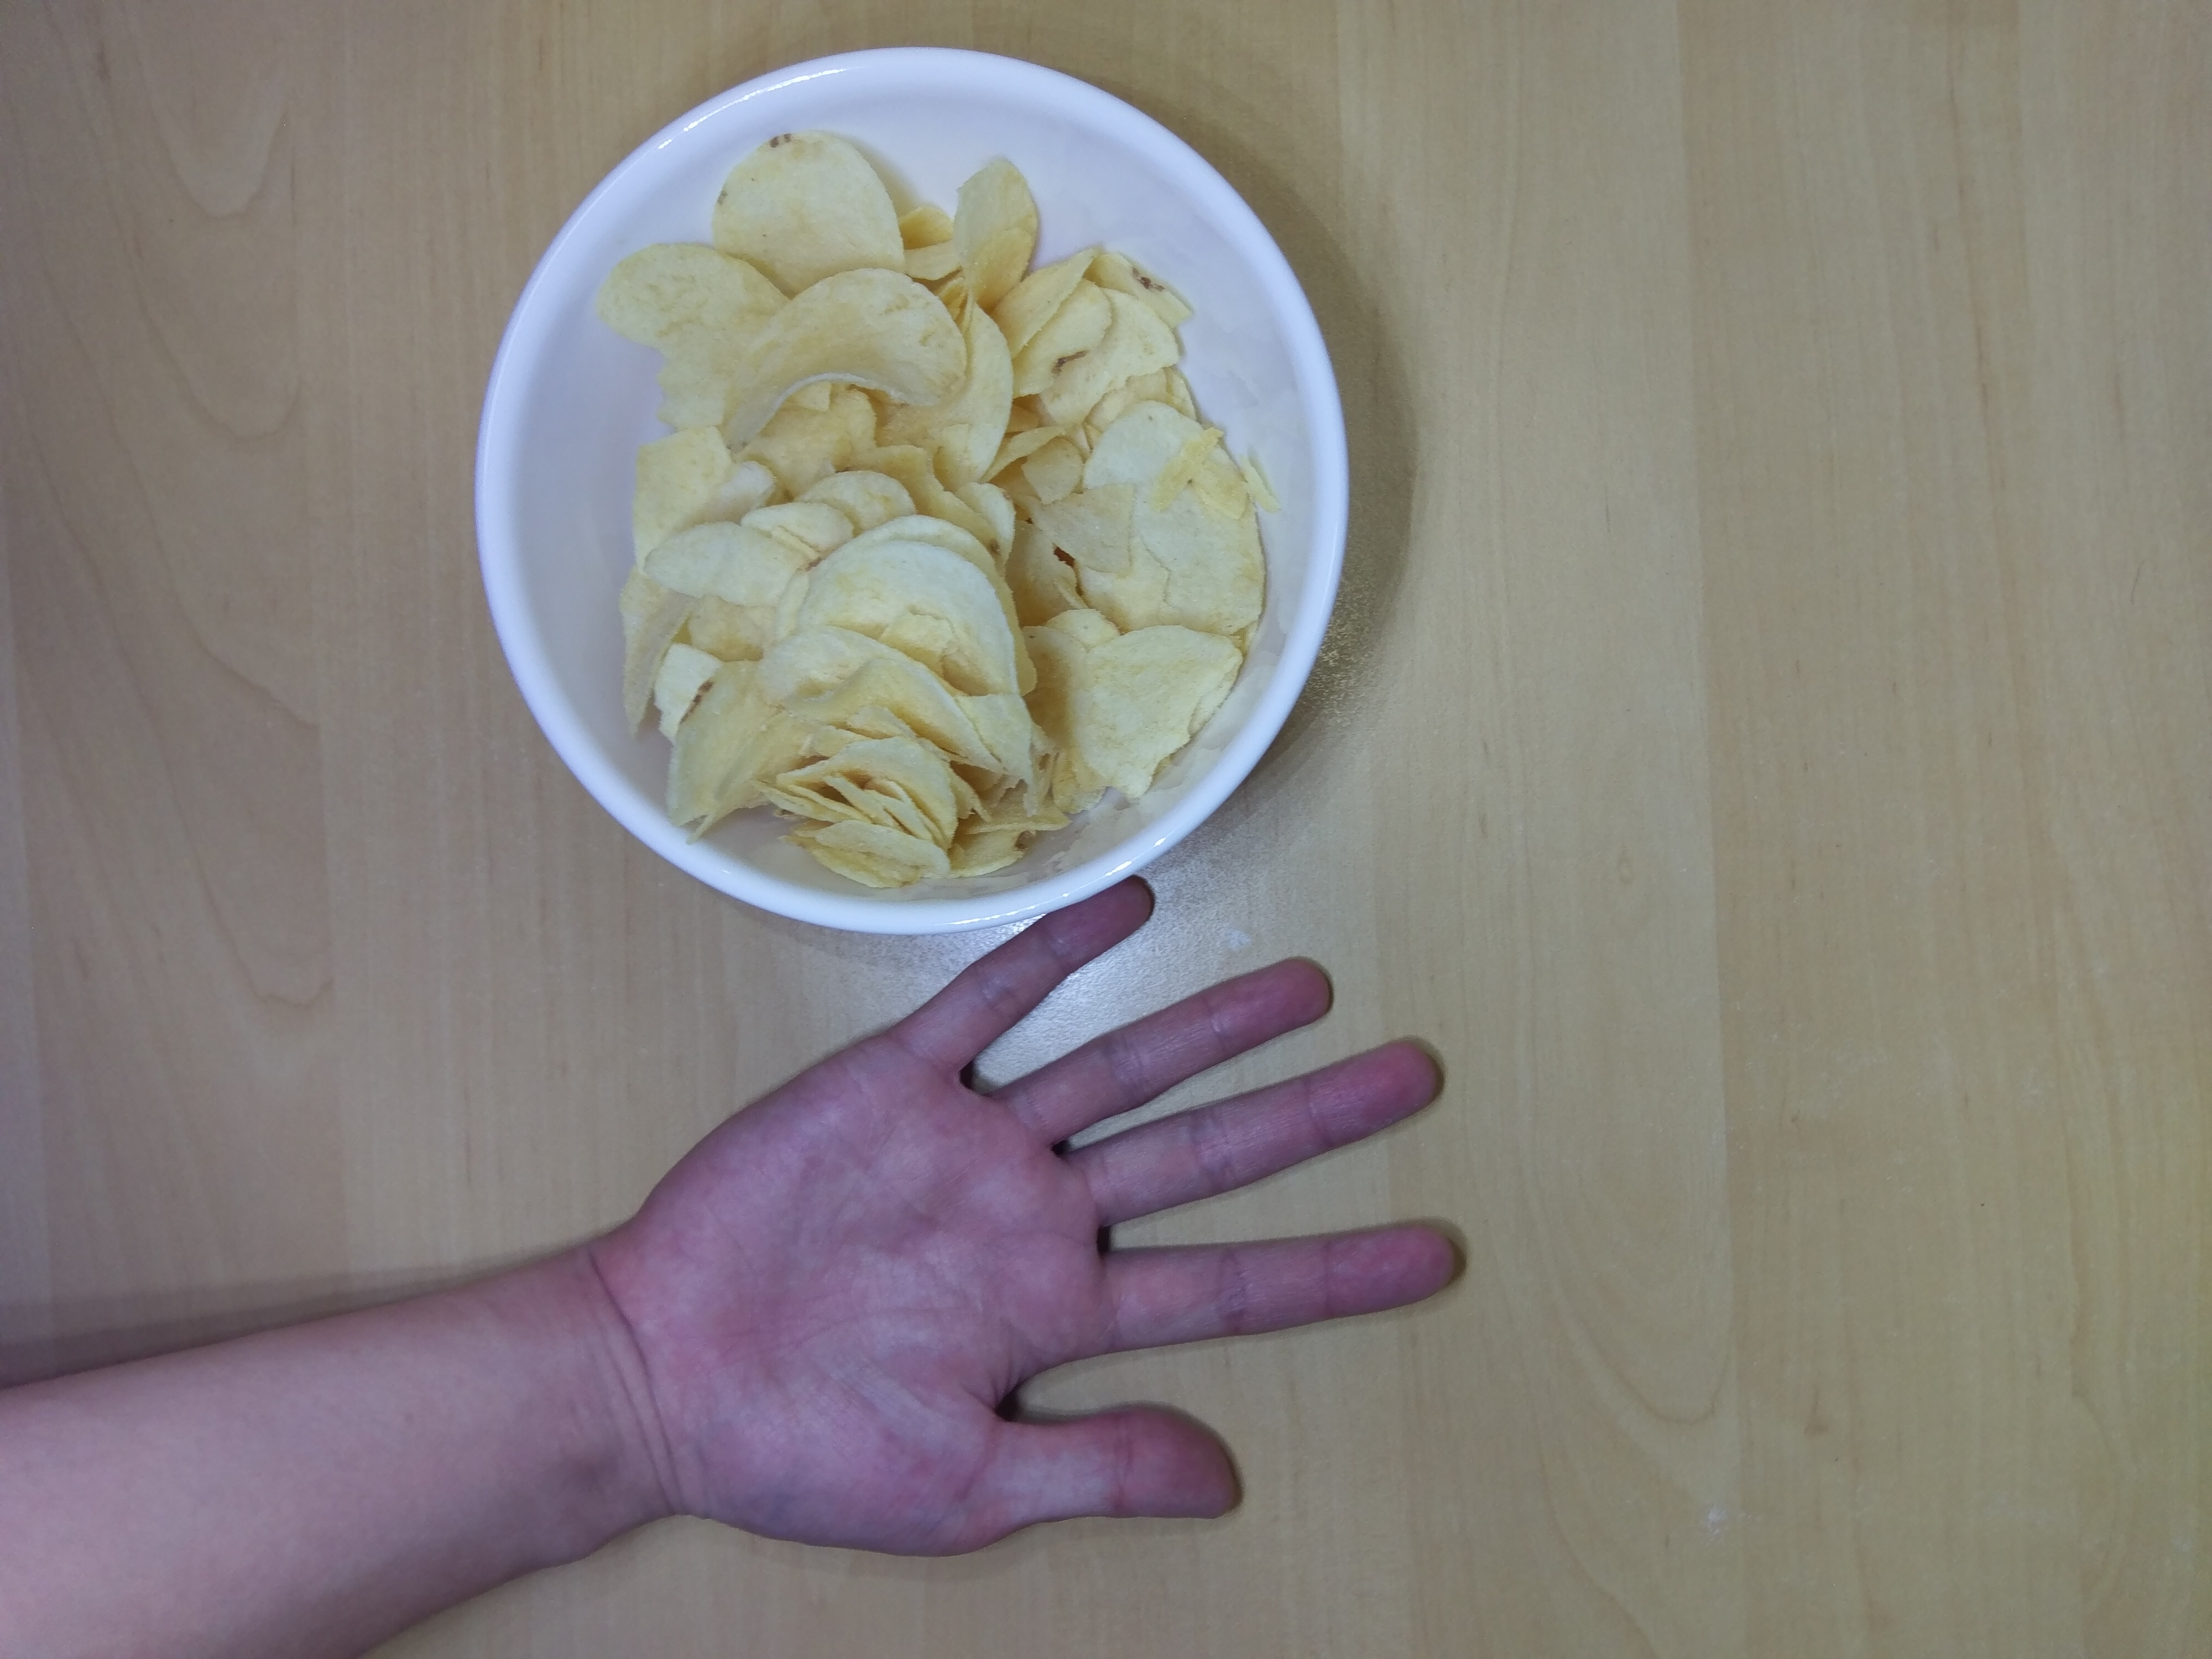 Cosmos Yogurt potato chips emptied into a bowl. My hand for size comparison.